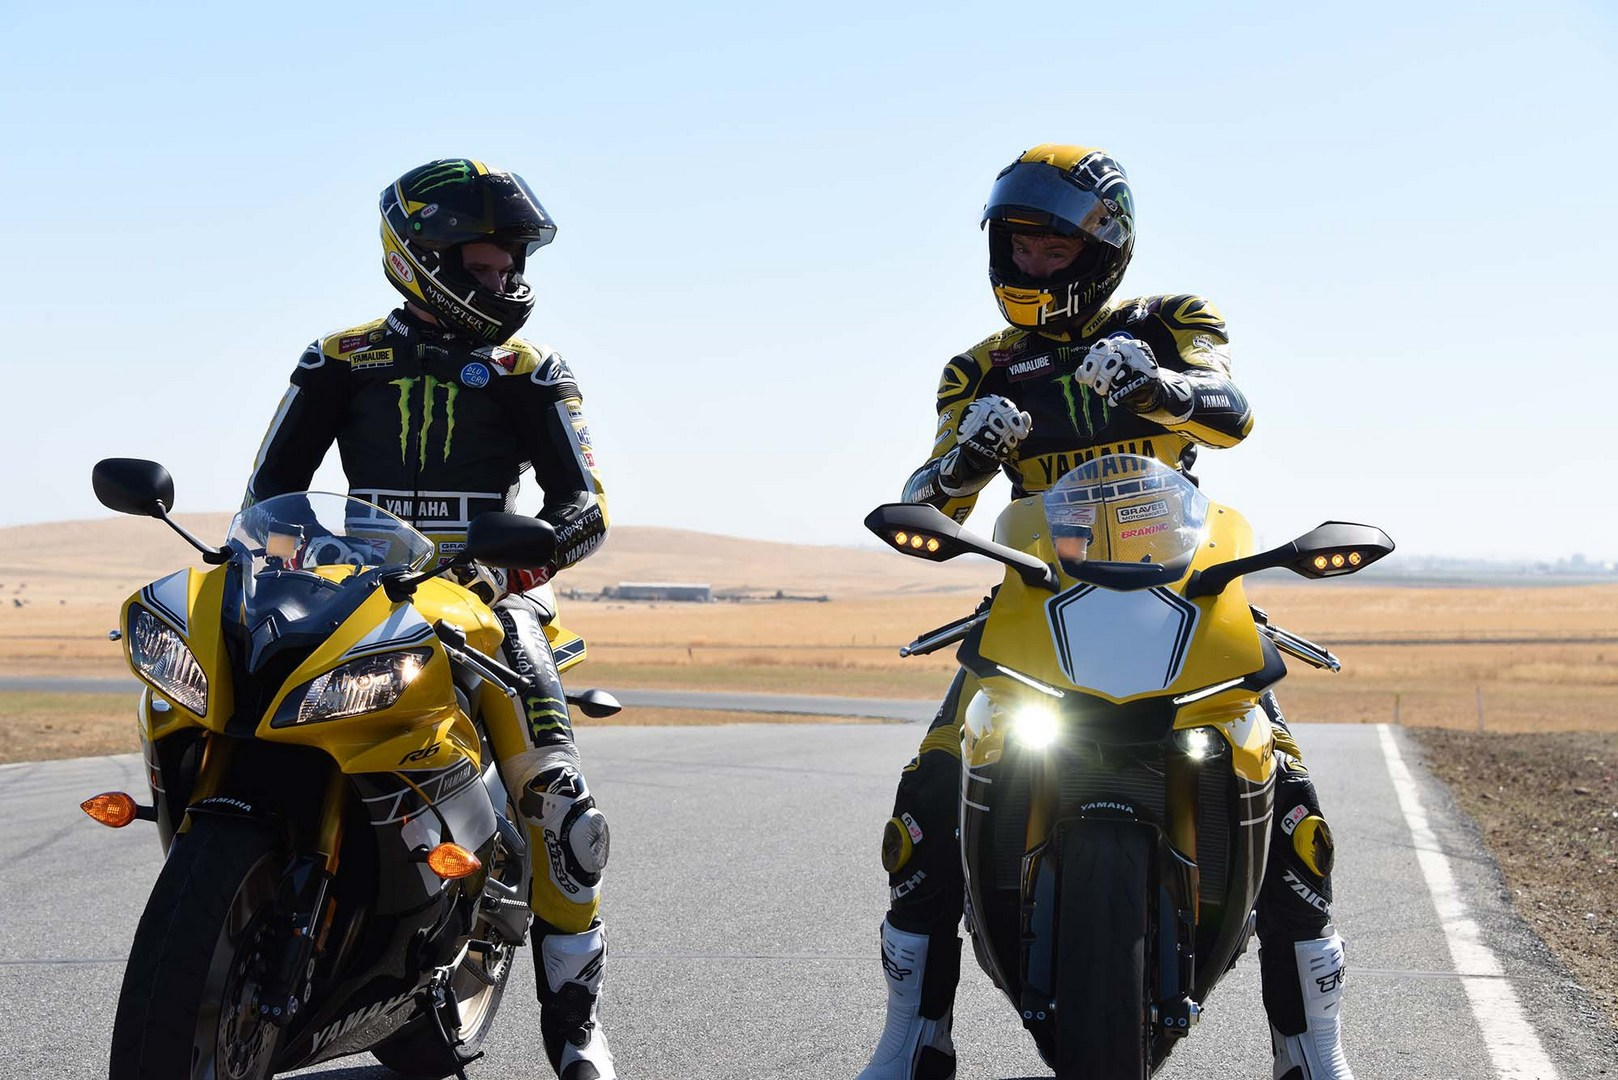 R1 And R6 In 60th Anniversary Livery